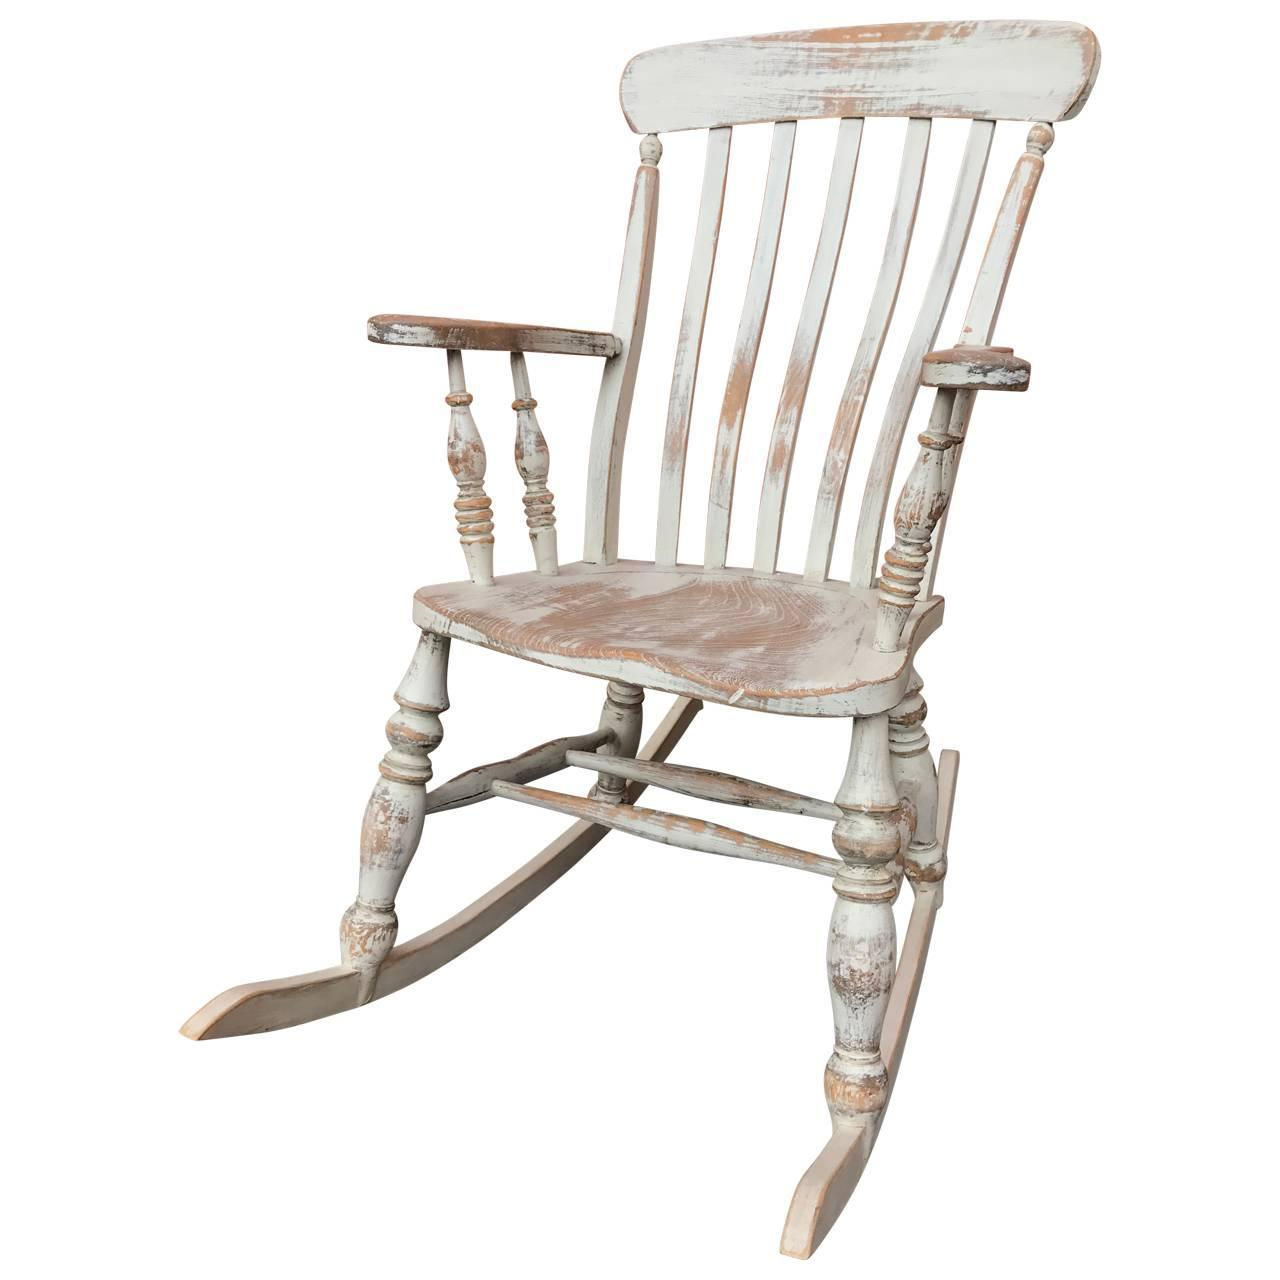 Banana Rocker Chair Gustavian Rocking Chair Sweden For Sale At 1stdibs